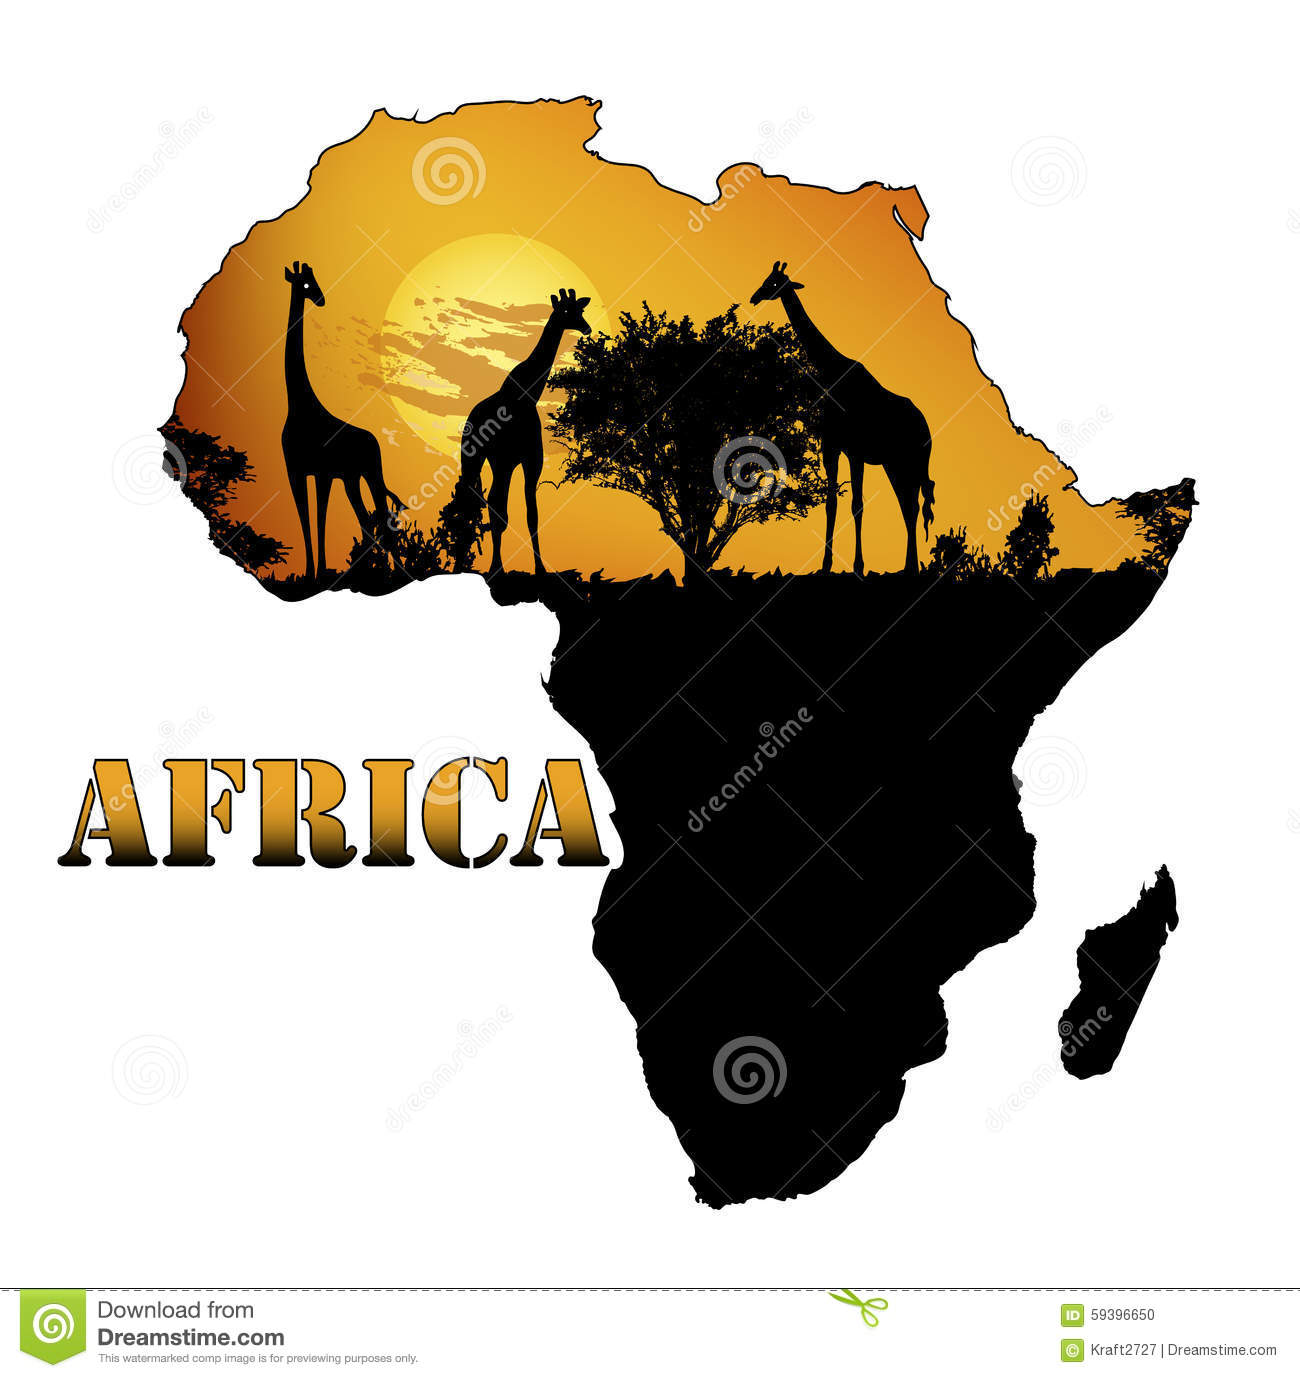 africa map art fauna of africa on the map stock vector illustration of 10025